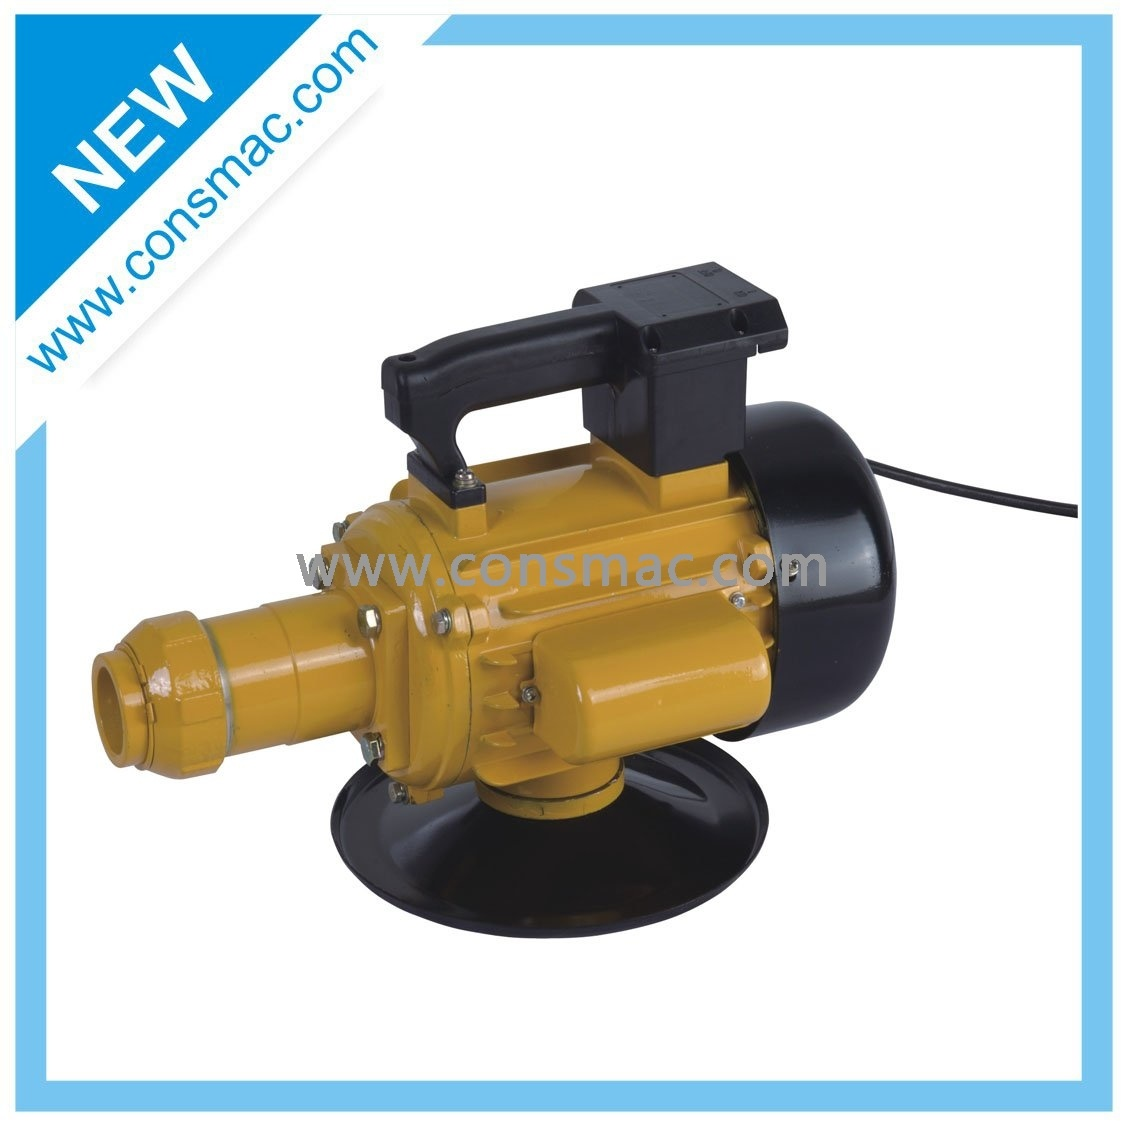 China Electric Concrete Vibrator Motor China Concrete